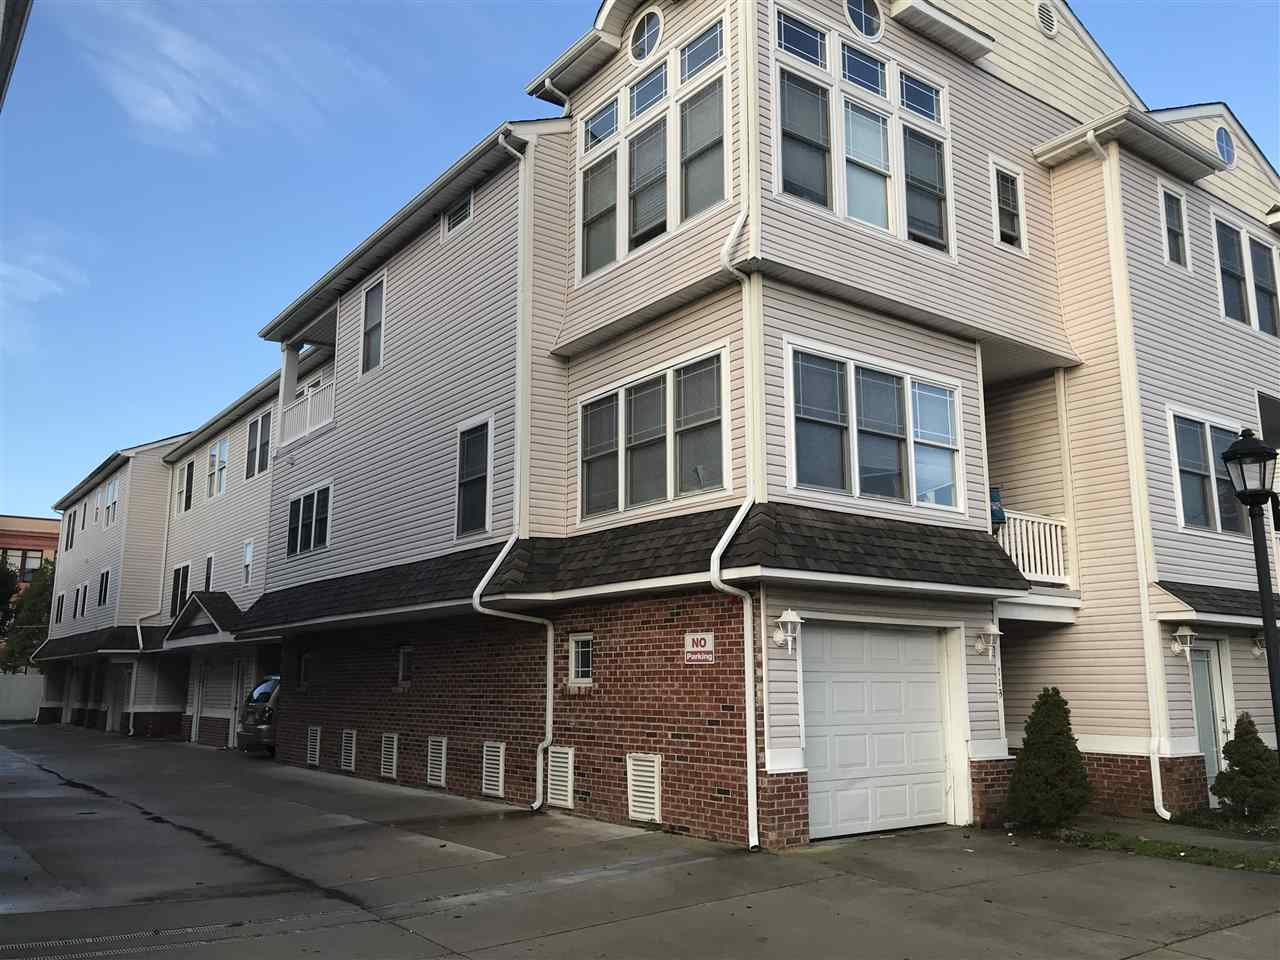 152, Unit 108 out Roberts, Wildwood